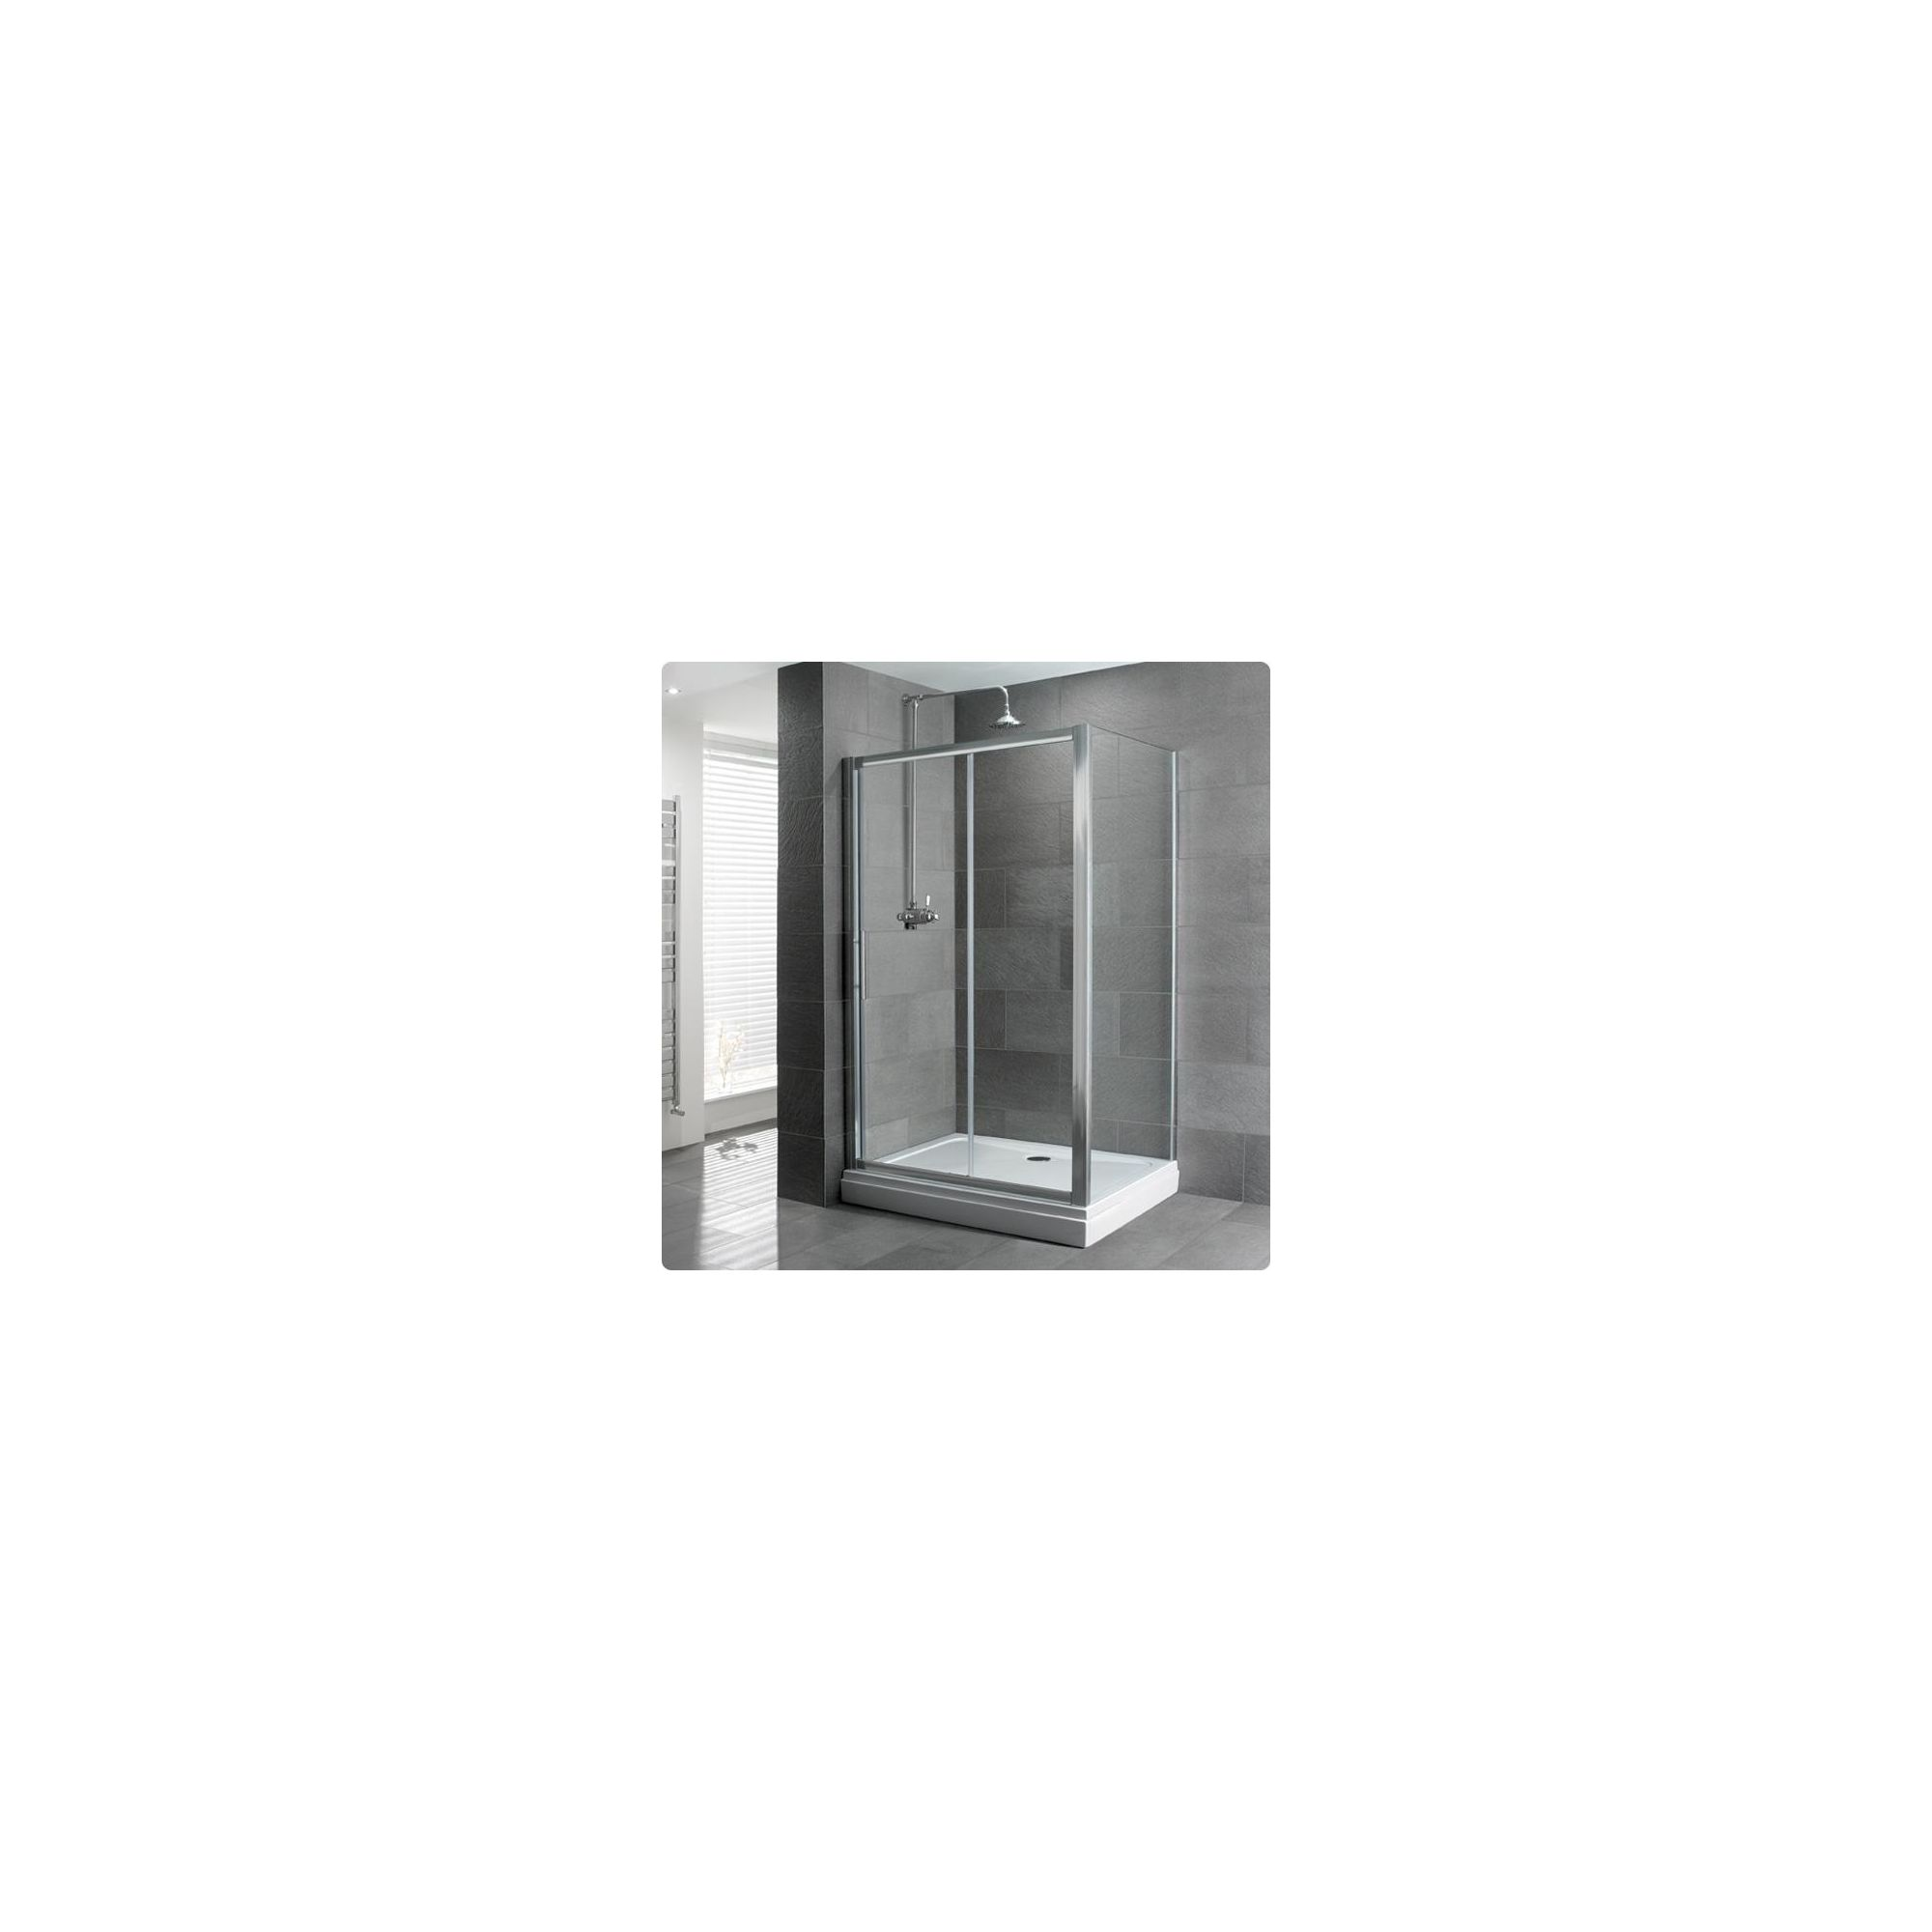 Duchy Select Silver Single Sliding Door Shower Enclosure, 1400mm x 800mm, Standard Tray, 6mm Glass at Tesco Direct